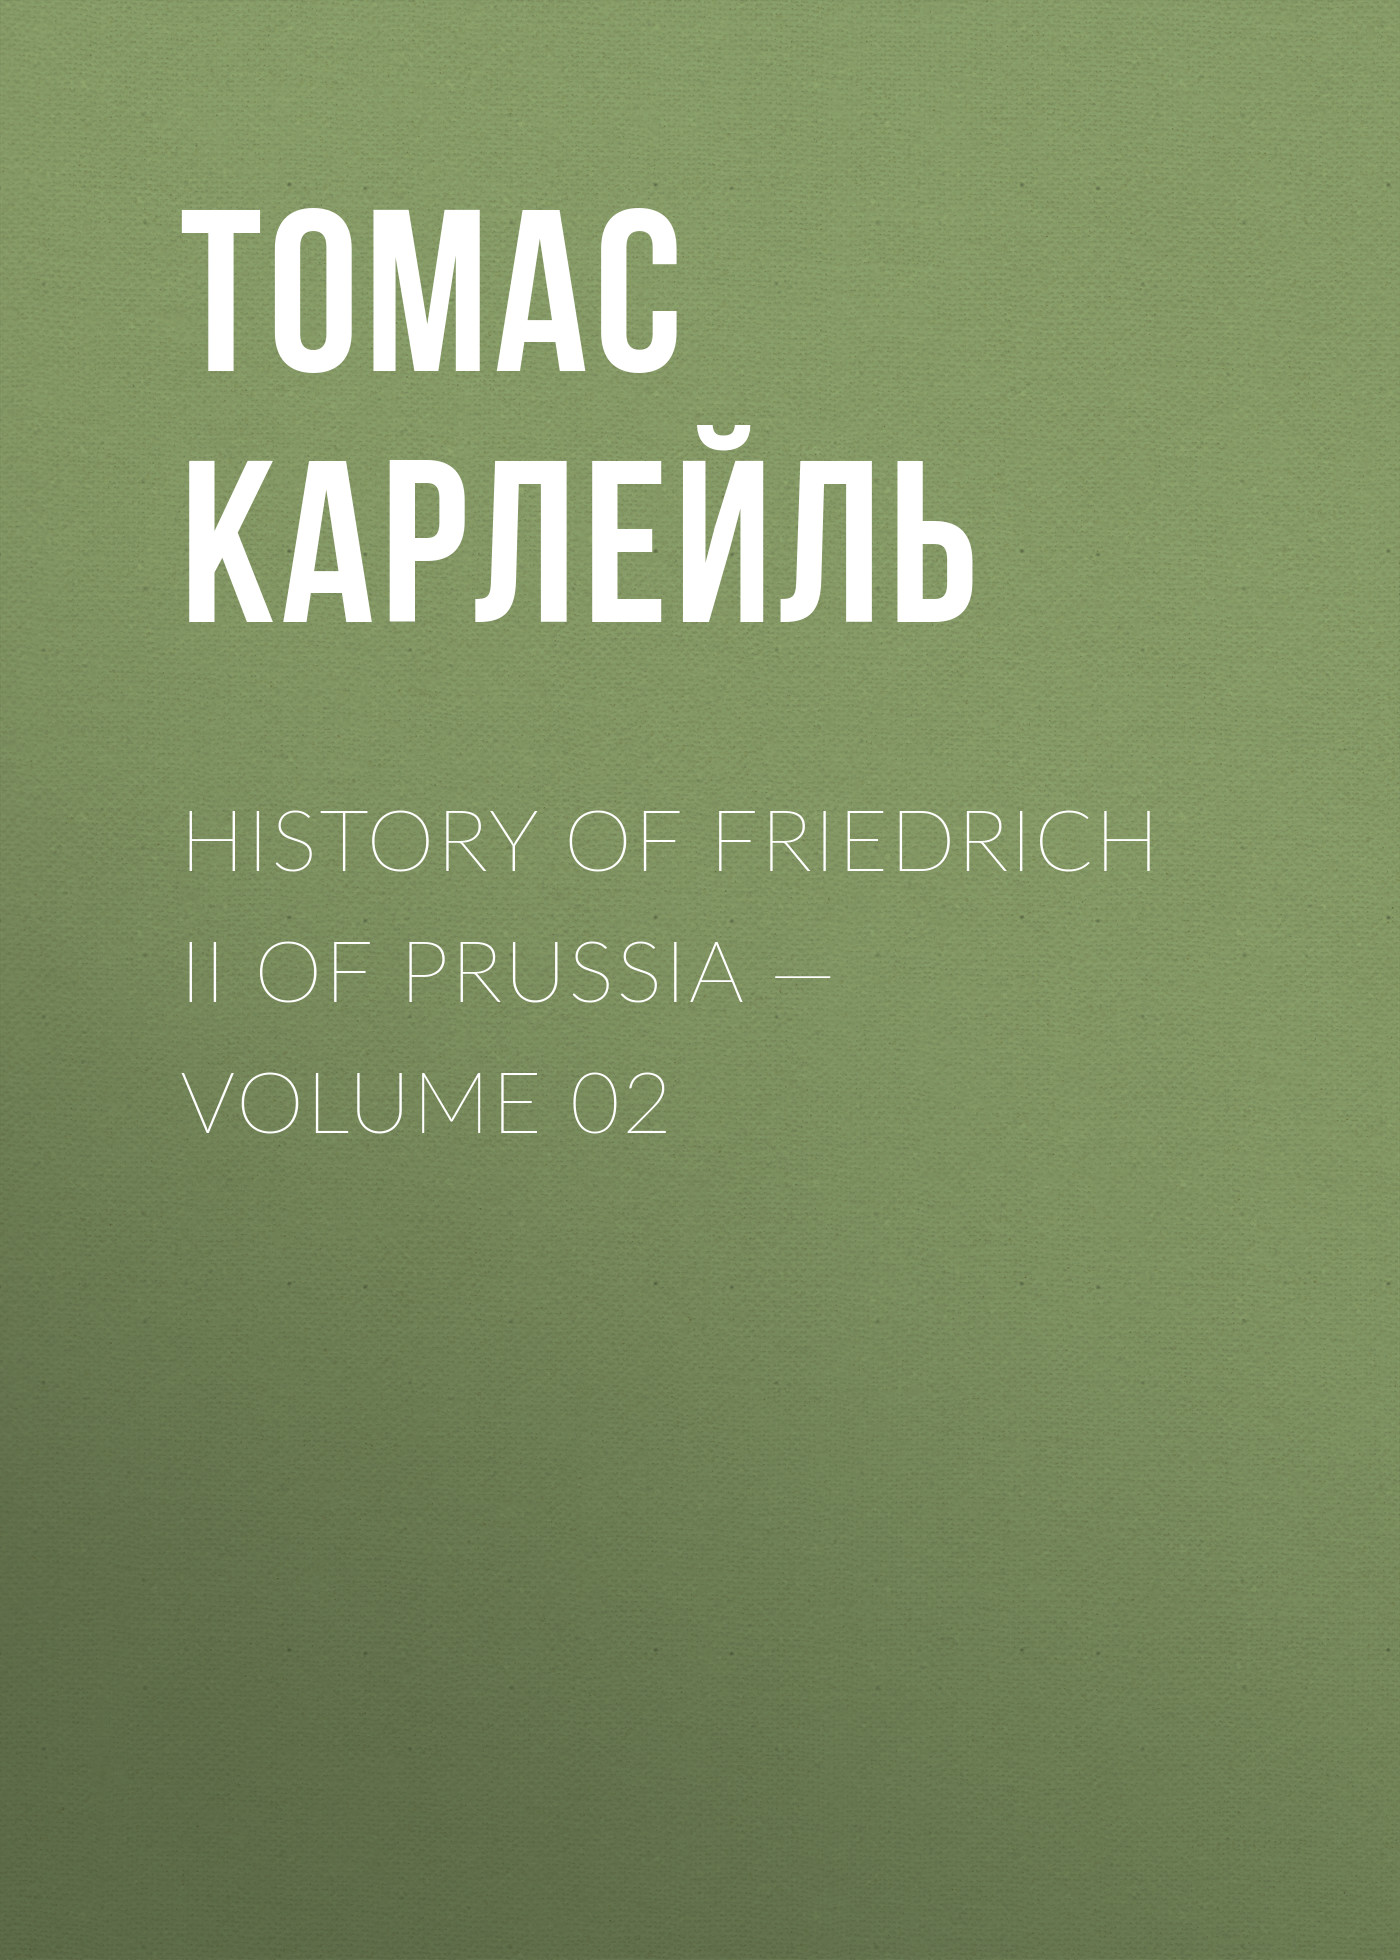 Томас Карлейль History of Friedrich II of Prussia — Volume 02 томас карлейль history of friedrich ii of prussia volume 10